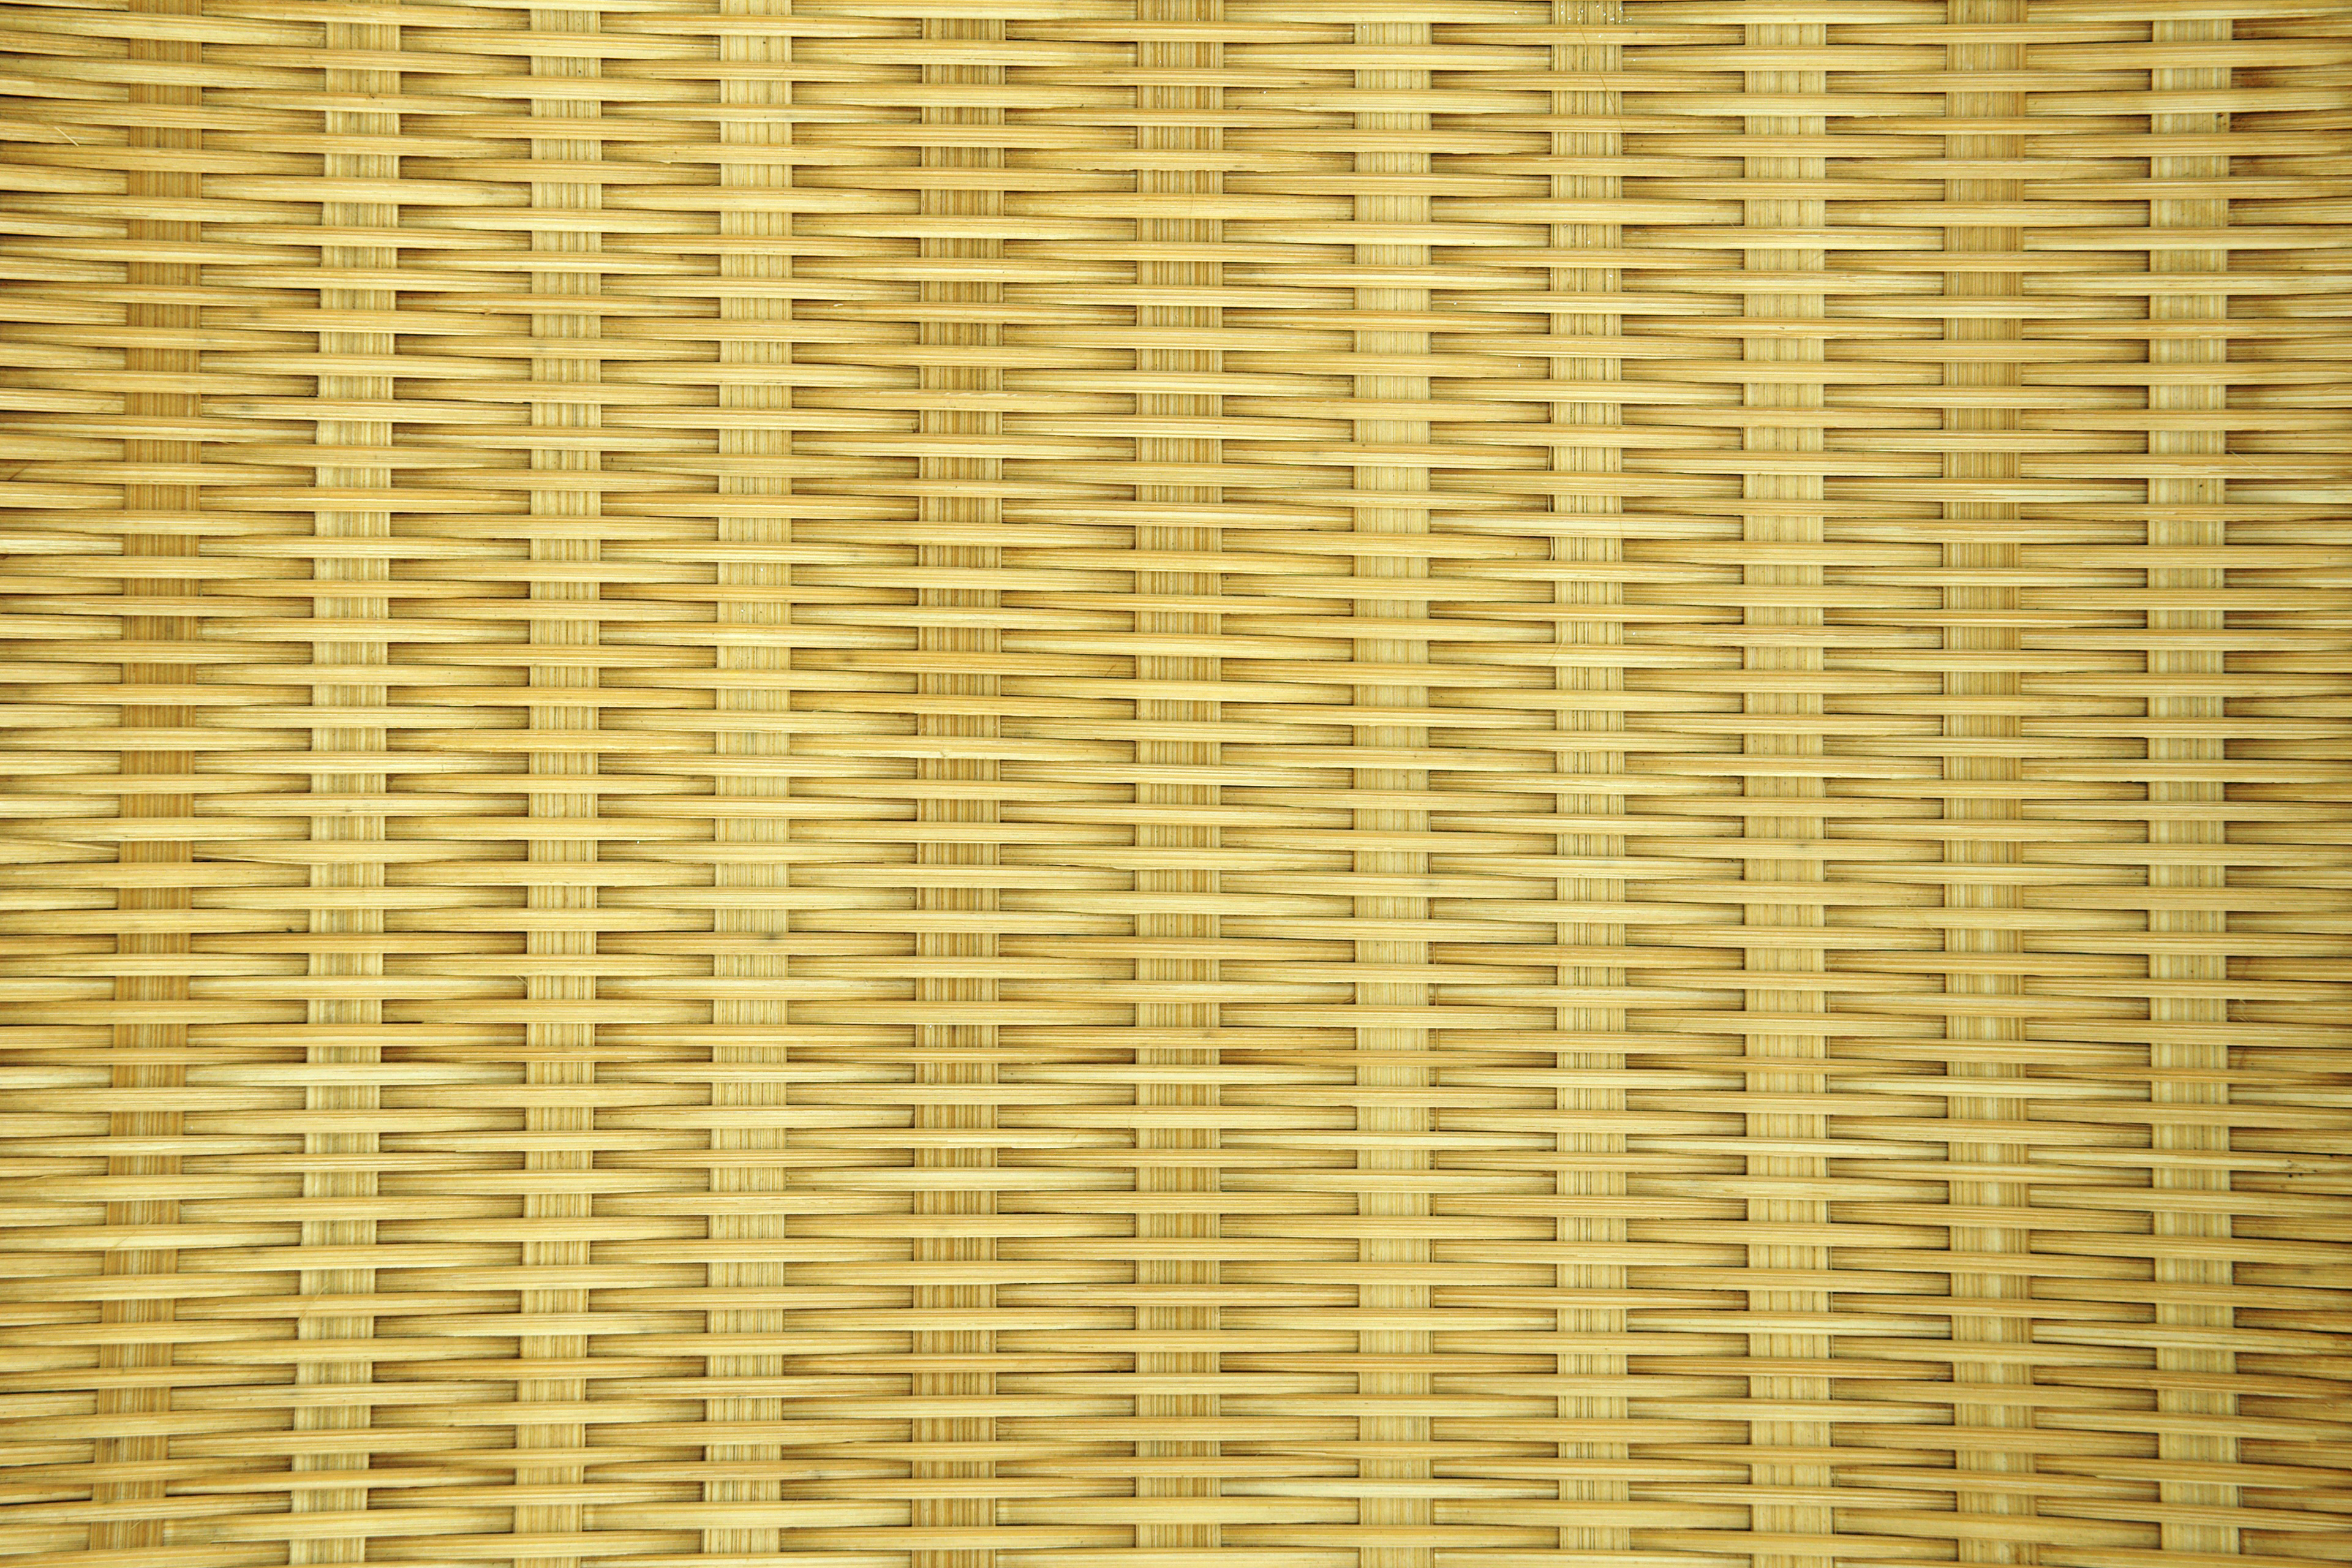 Bamboo,craft,nature,wood